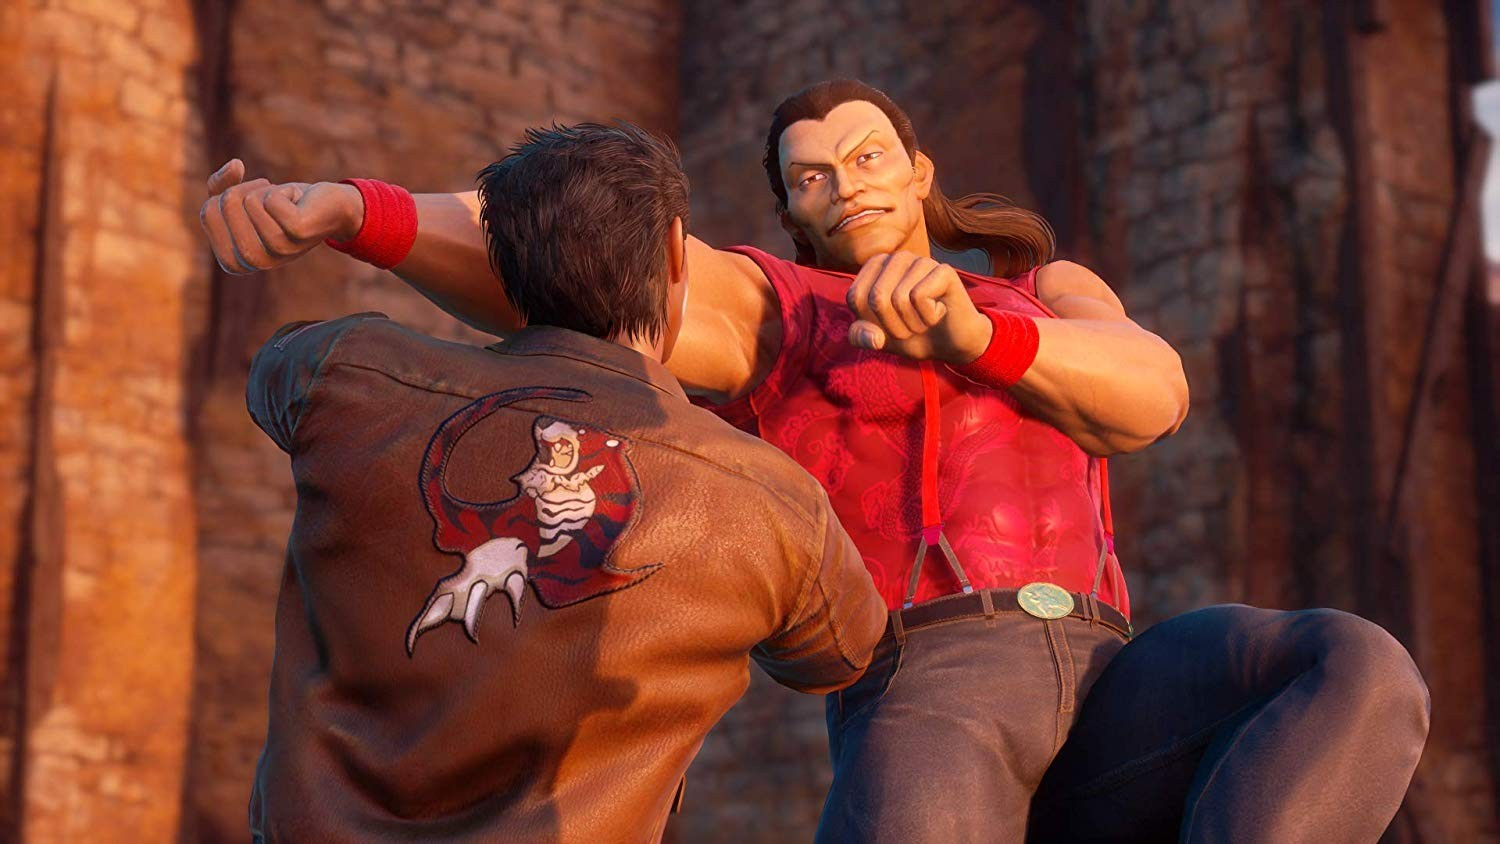 Shenmue III, Shenmue 3, release date, gameplay, trailer, PlayStation 4, Gamescom 2019, game, update, story, new trailer, A day in Shenmue